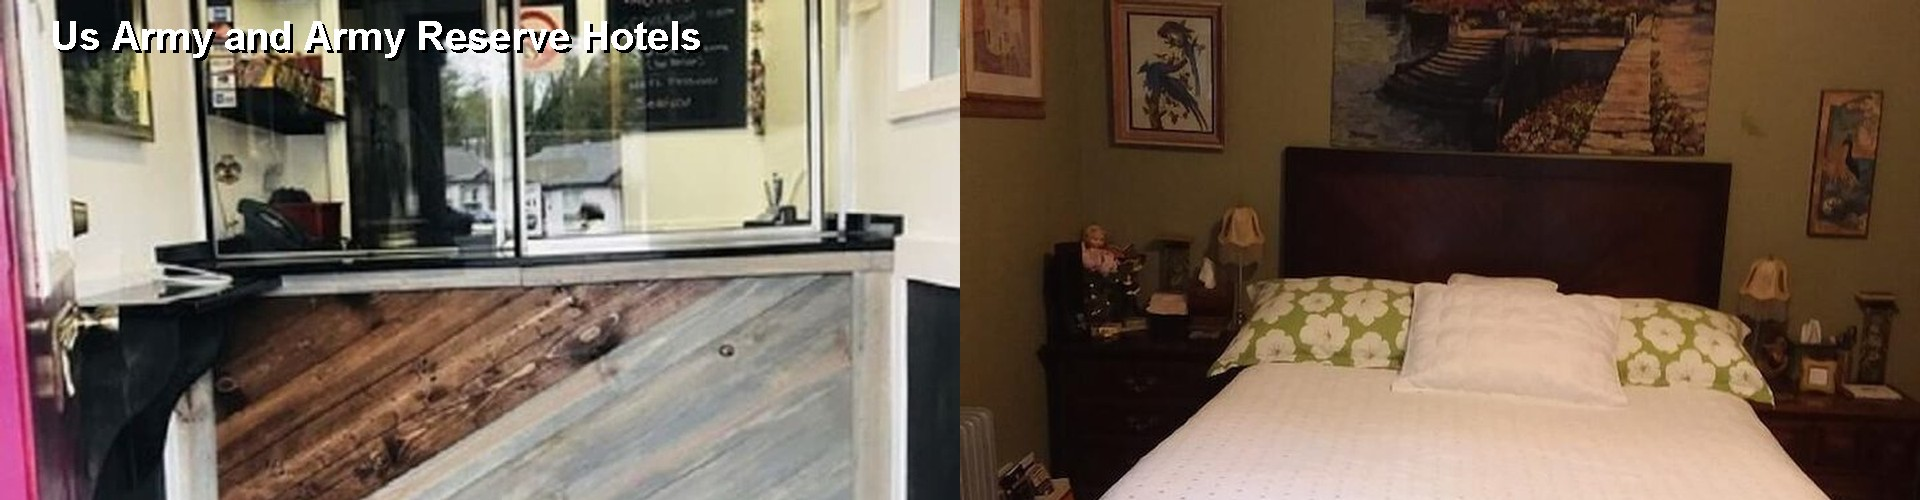 5 Best Hotels near Us Army and Army Reserve